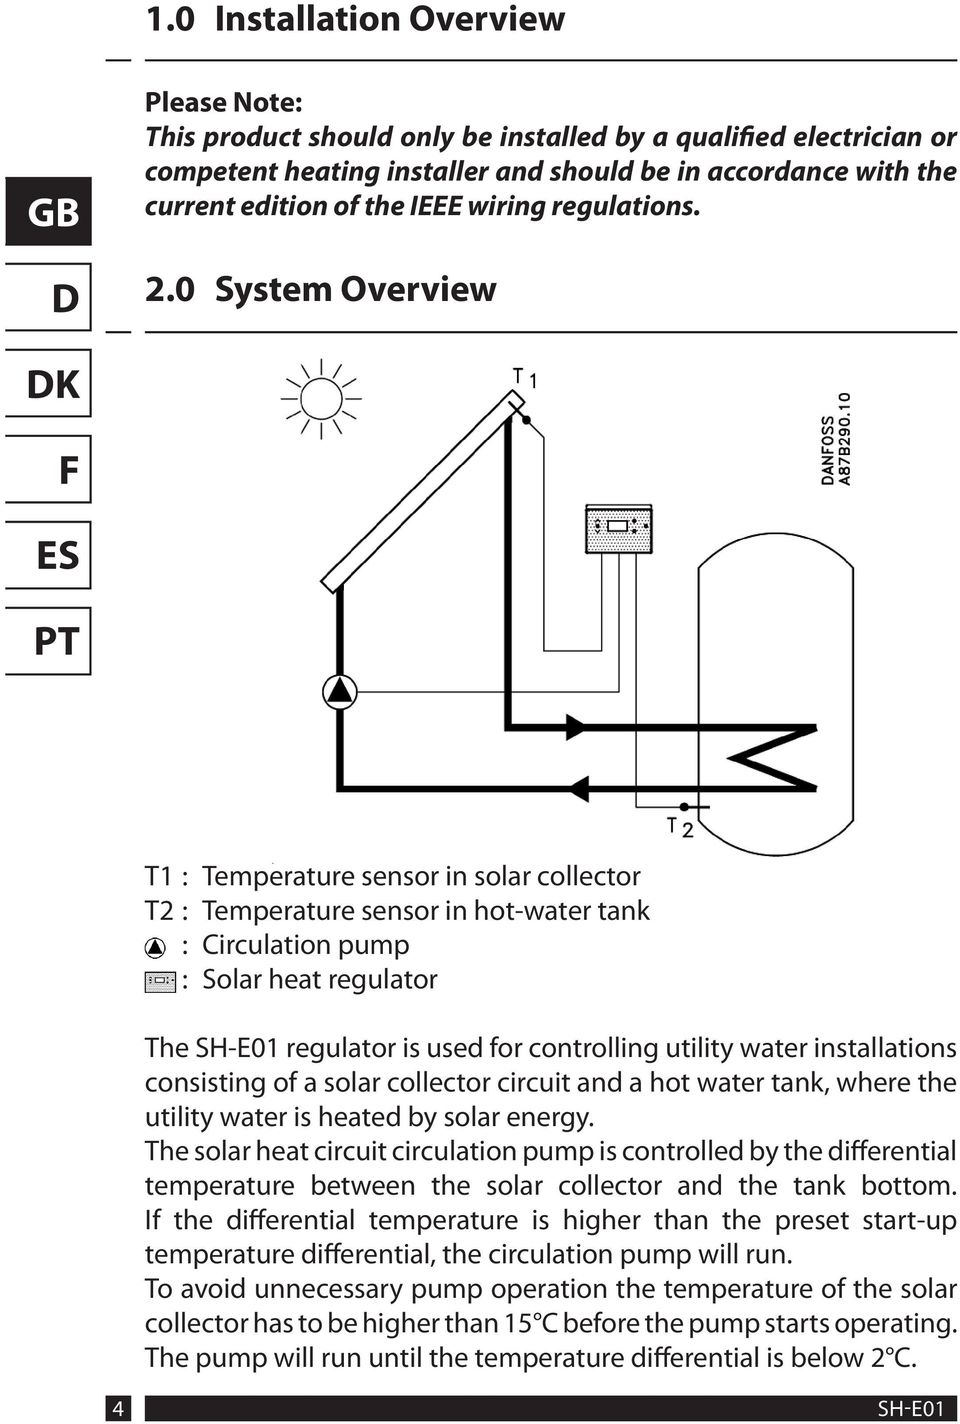 0 System Overview K T1 : Temperature sensor in solar collector T2 : Temperature sensor in hot-water tank : Circulation pump : Solar heat regulator The SH-E01 regulator is used for controlling utility